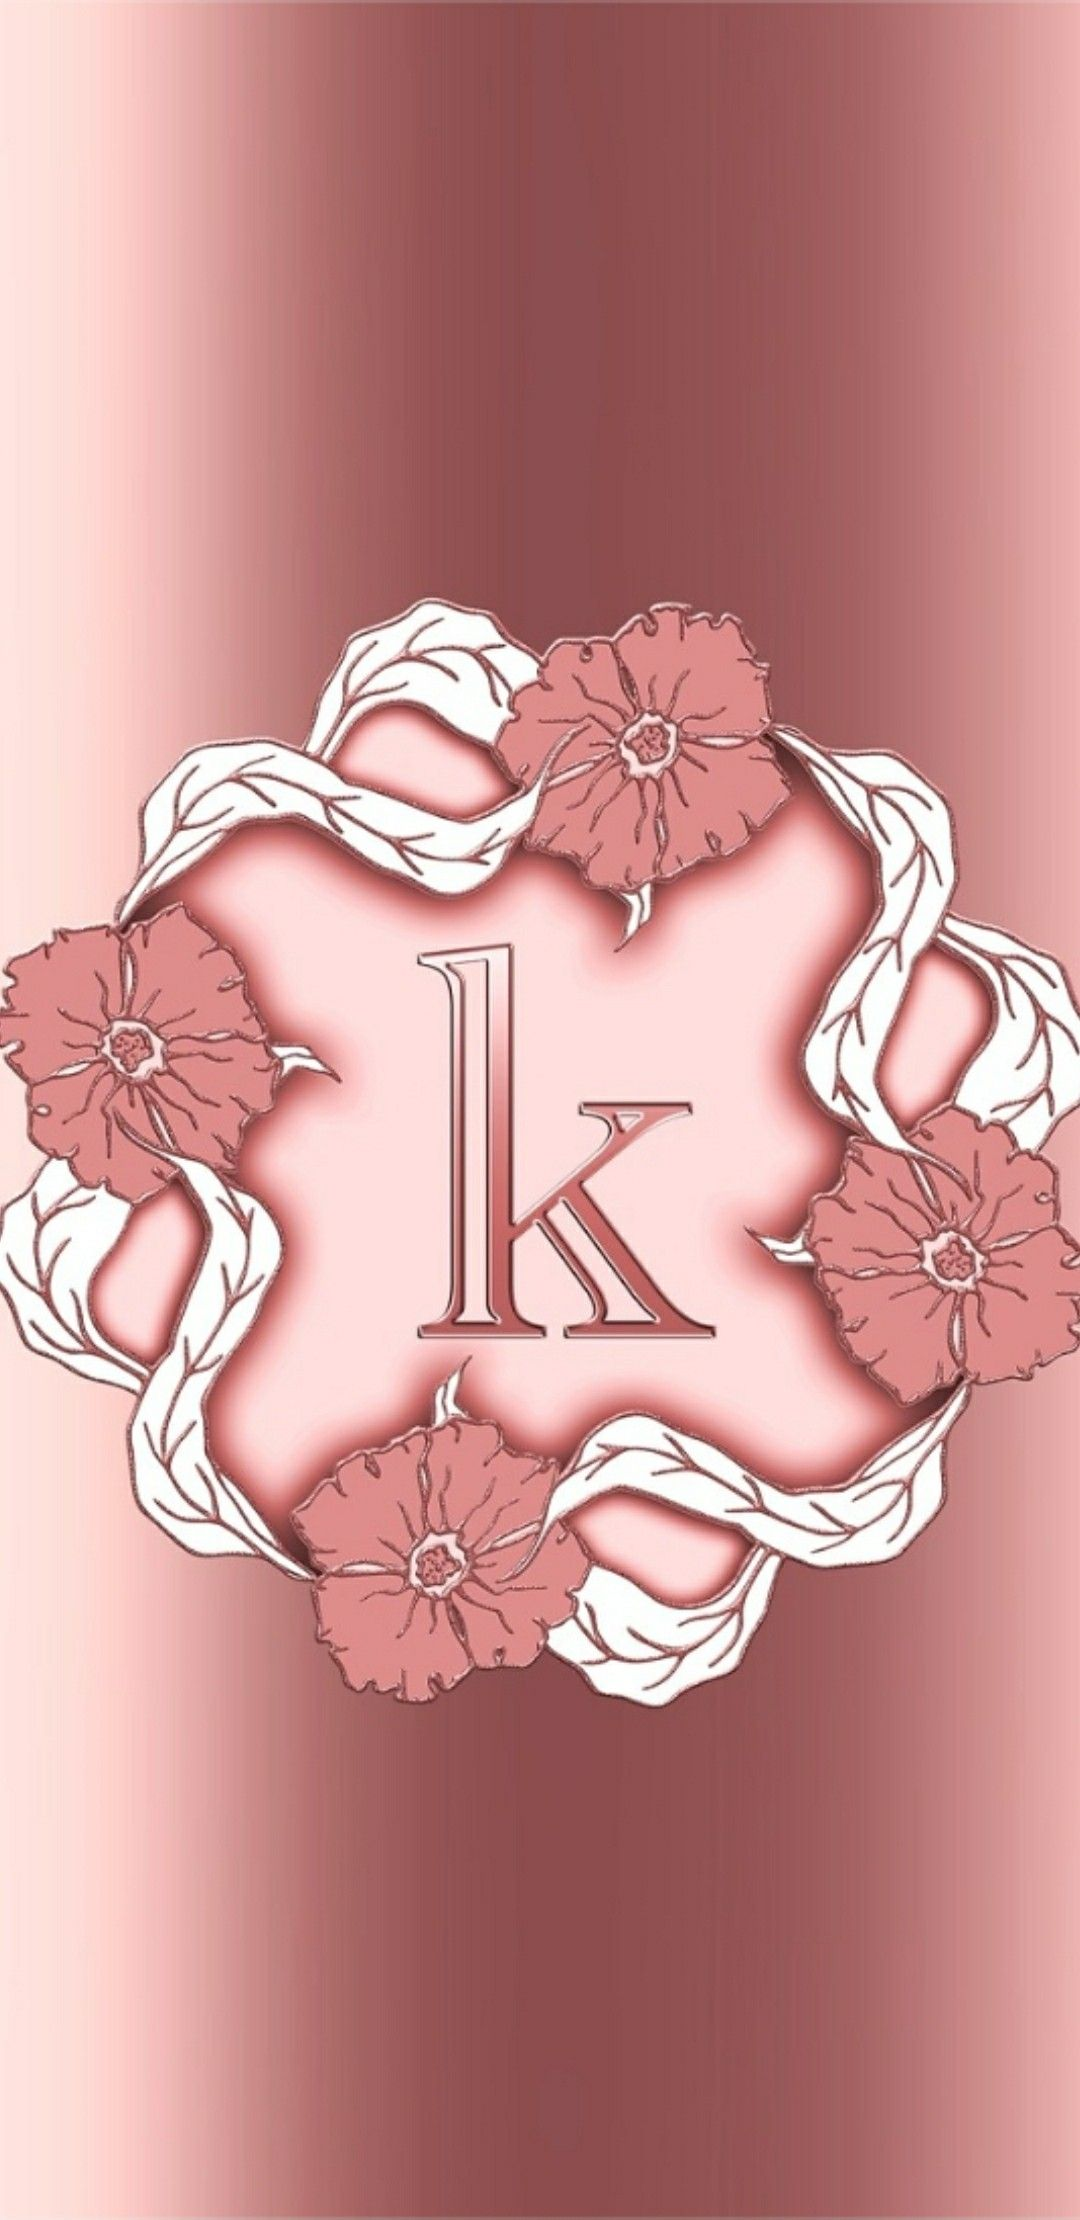 Pin By Kimb R On The Letter K Kimberly Cute Wallpapers Mehndi Designs Cool Wallpaper